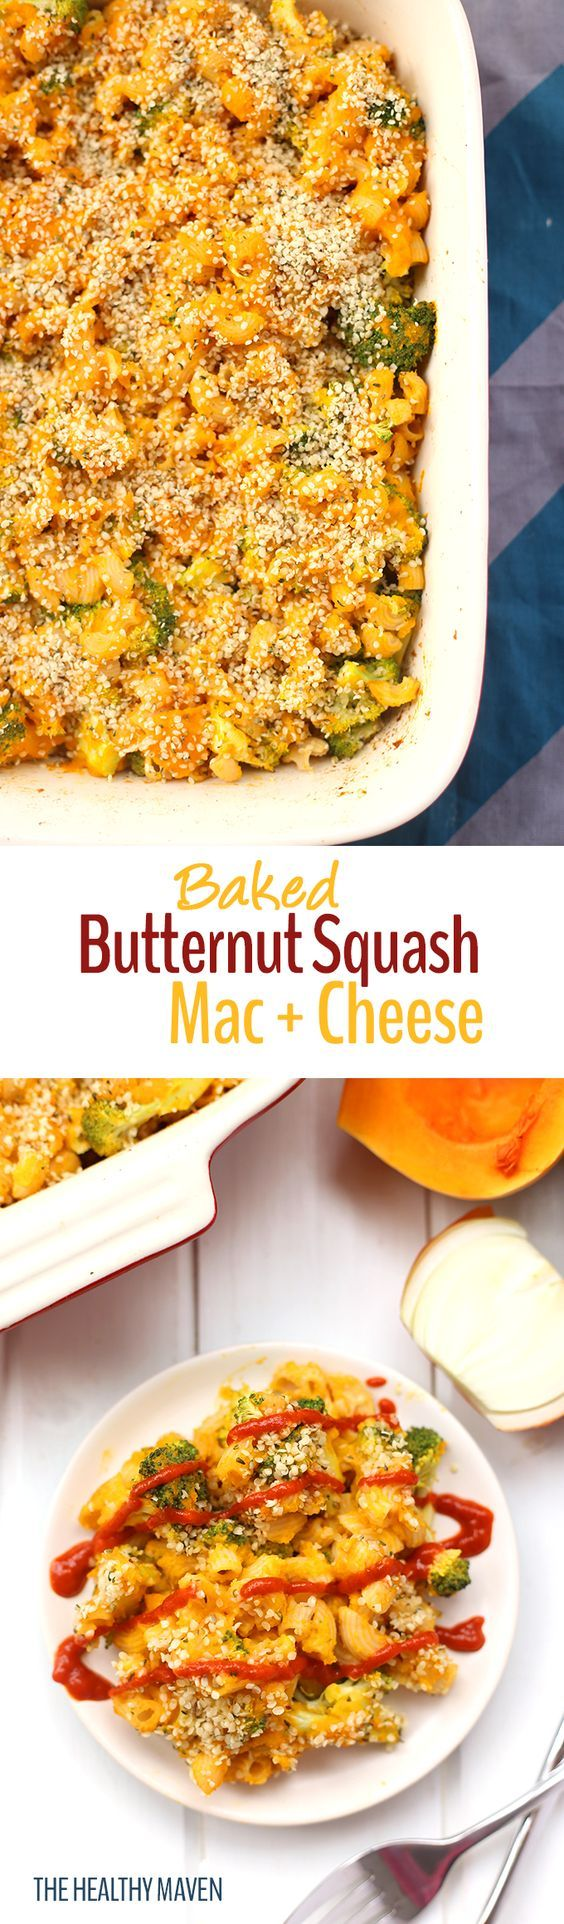 "Ditch the dairy with this vegan Baked Butternut Squash Mac and Cheese Recipe! It's made with gluten-free noodles, a health-kick from broccoli and a fake-out ""cheese"" sauce made from butternut squash and cashew milk!"